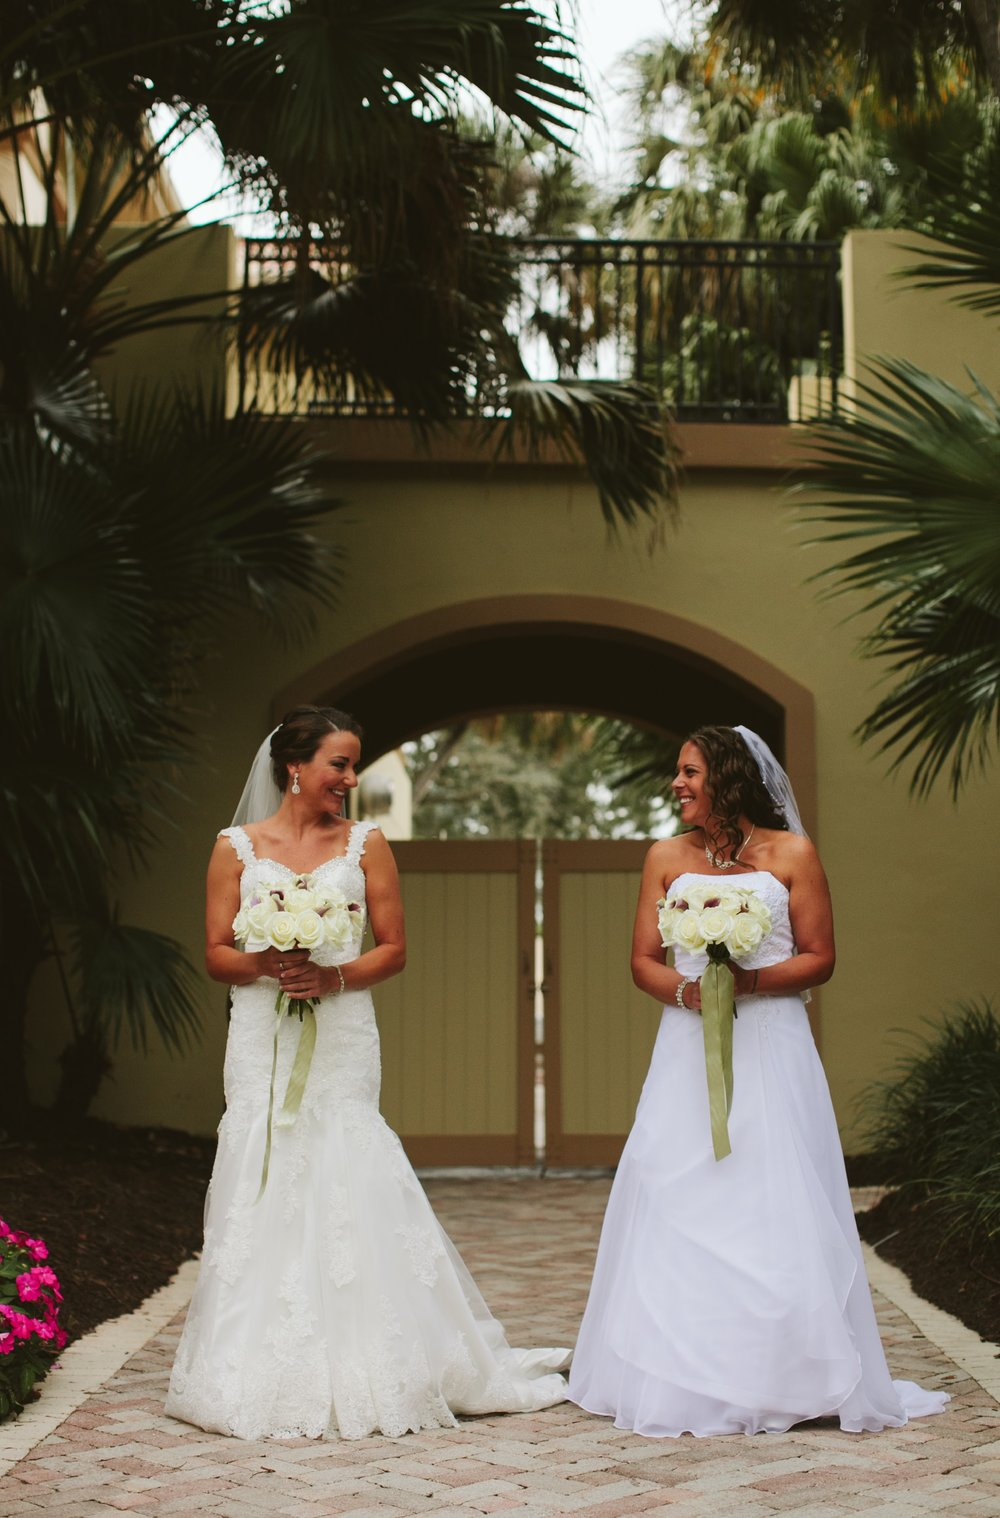 Kim + Monica's Mizner Country Club Wedding in Delray Beach31.jpg